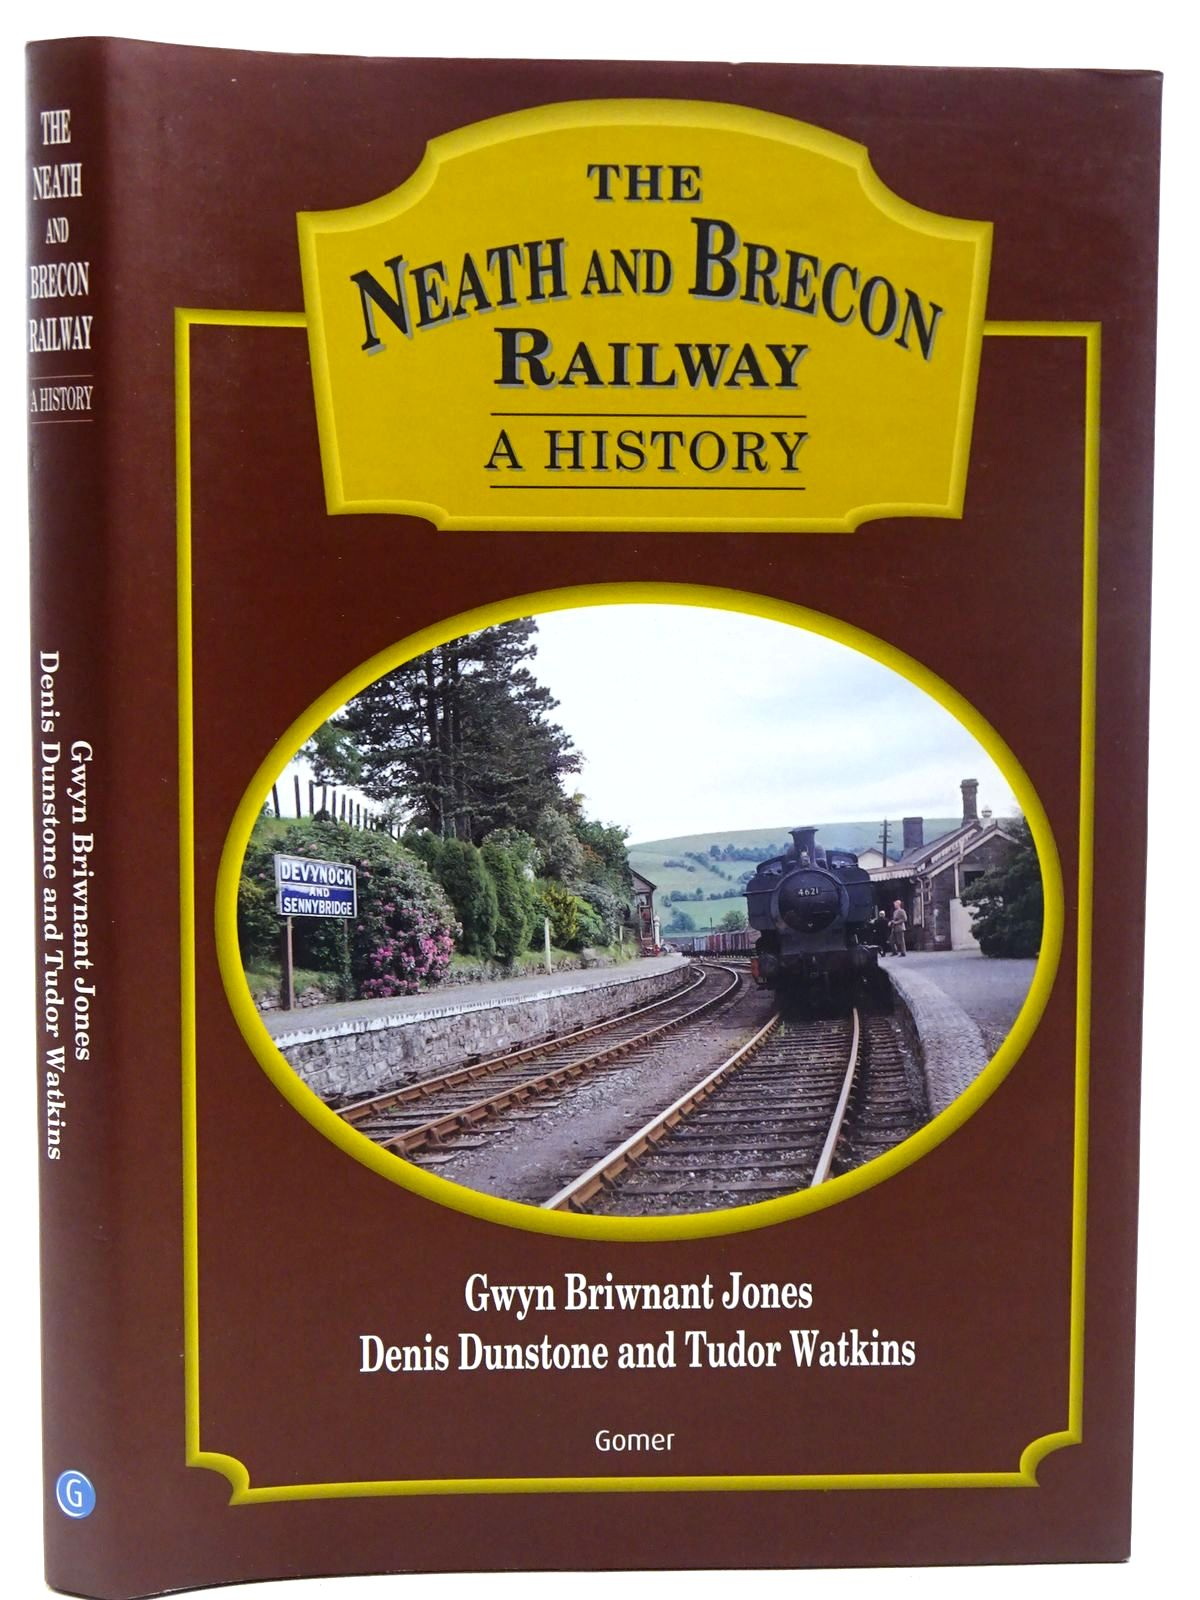 Photo of THE NEATH AND BRECON RAILWAY A HISTORY